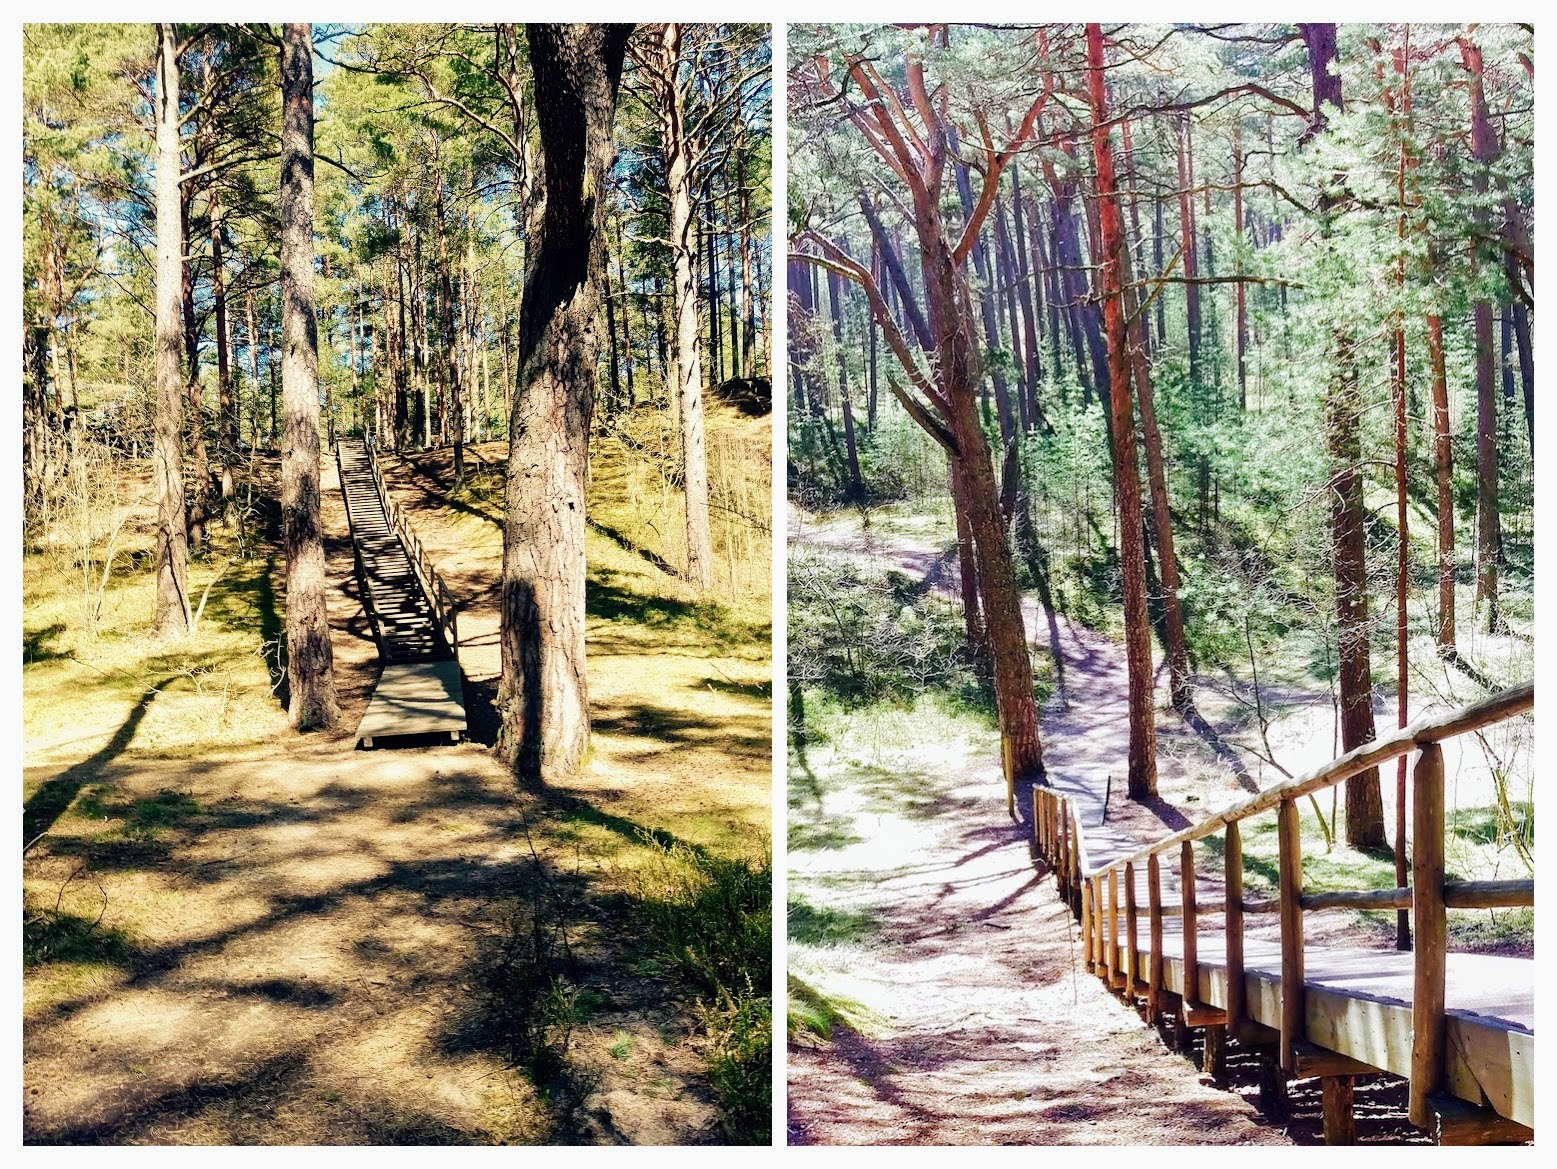 The nature trail provides and the biodiversity of the park - Urban Treetops